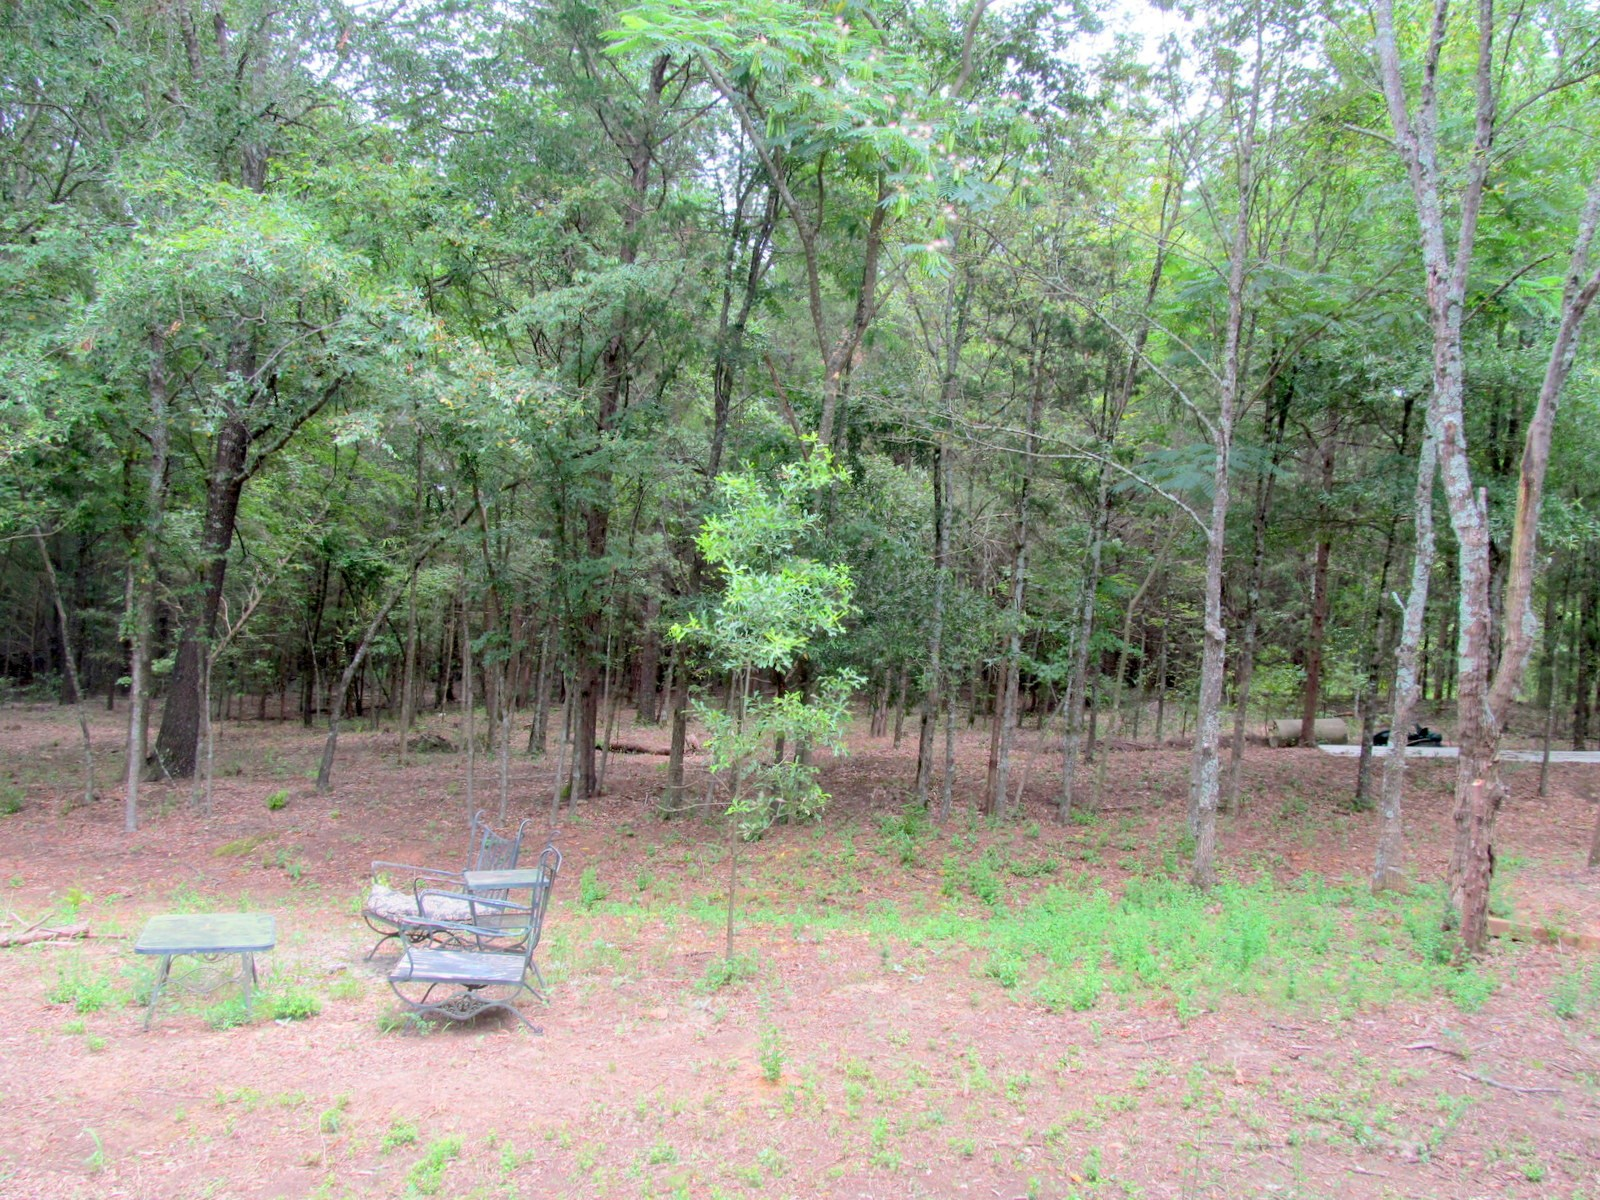 18 + EAST TEXAS ACRES FOR SALE - CAMP COUNTY - PITTSBURG, TX